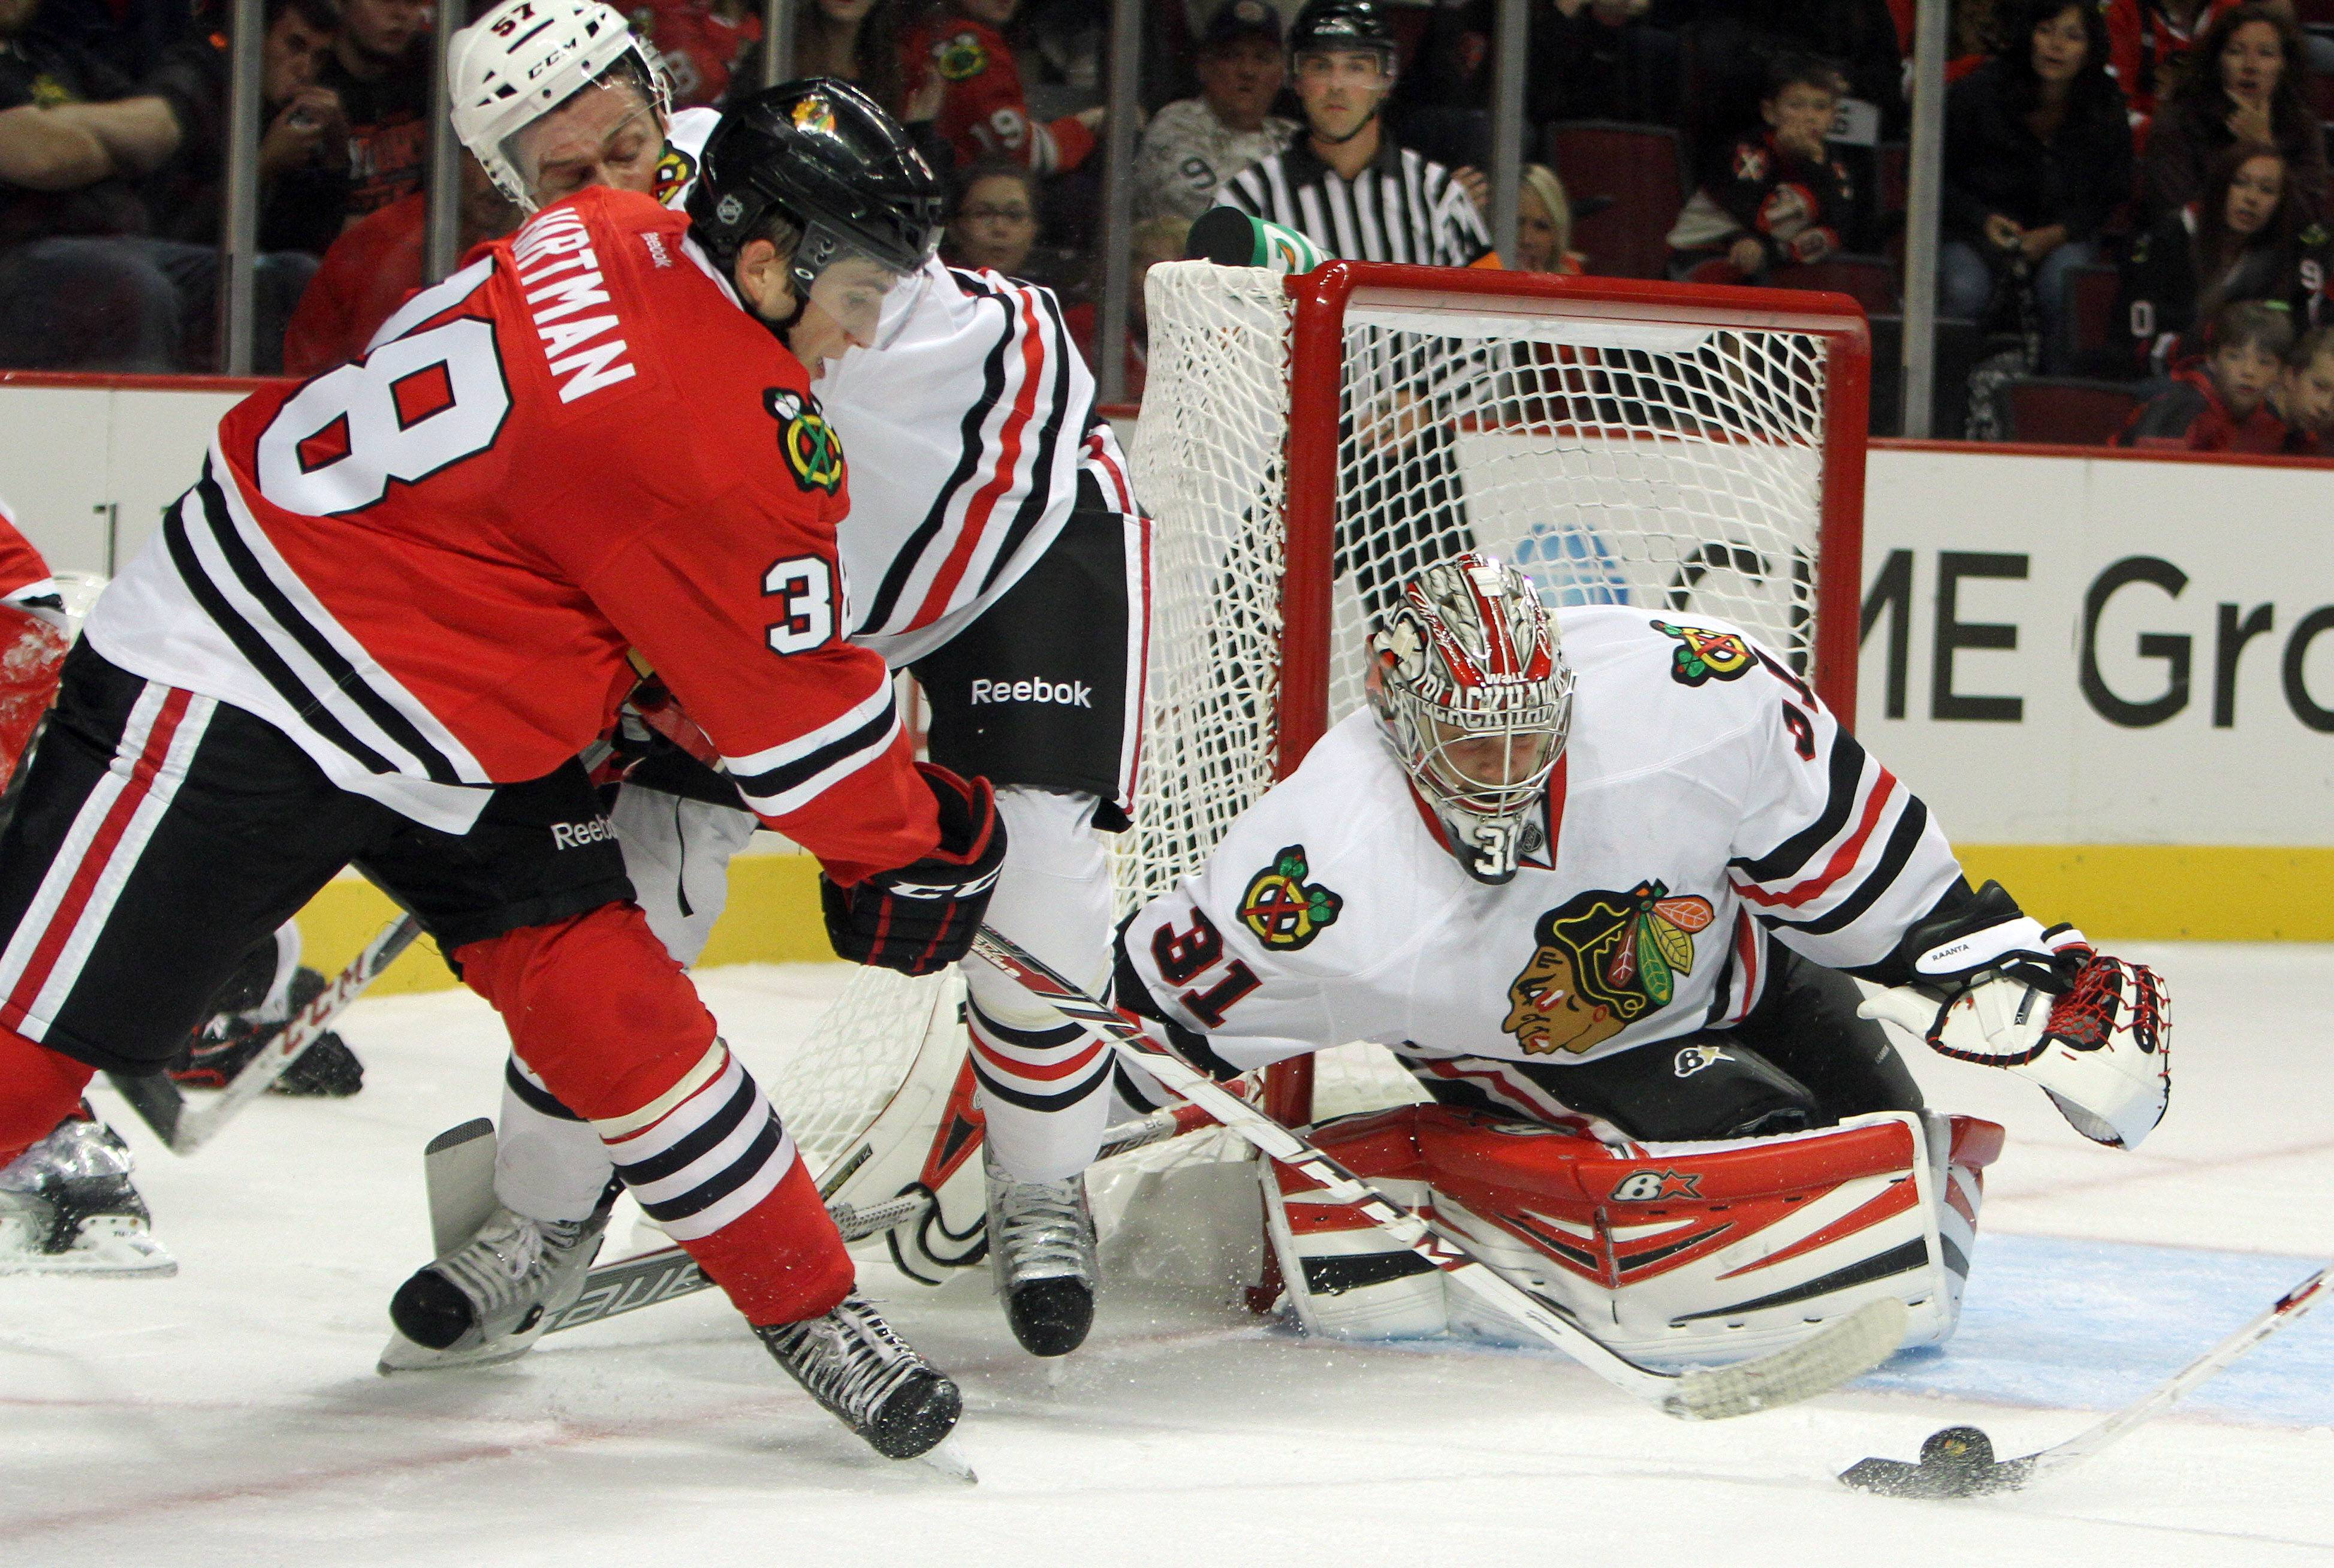 Ryan Hartman shoots on Antti Raanta during the Blackhawks' camp last September. t's been a whirlwind year for the West Dundee native and top Hawks prospect.